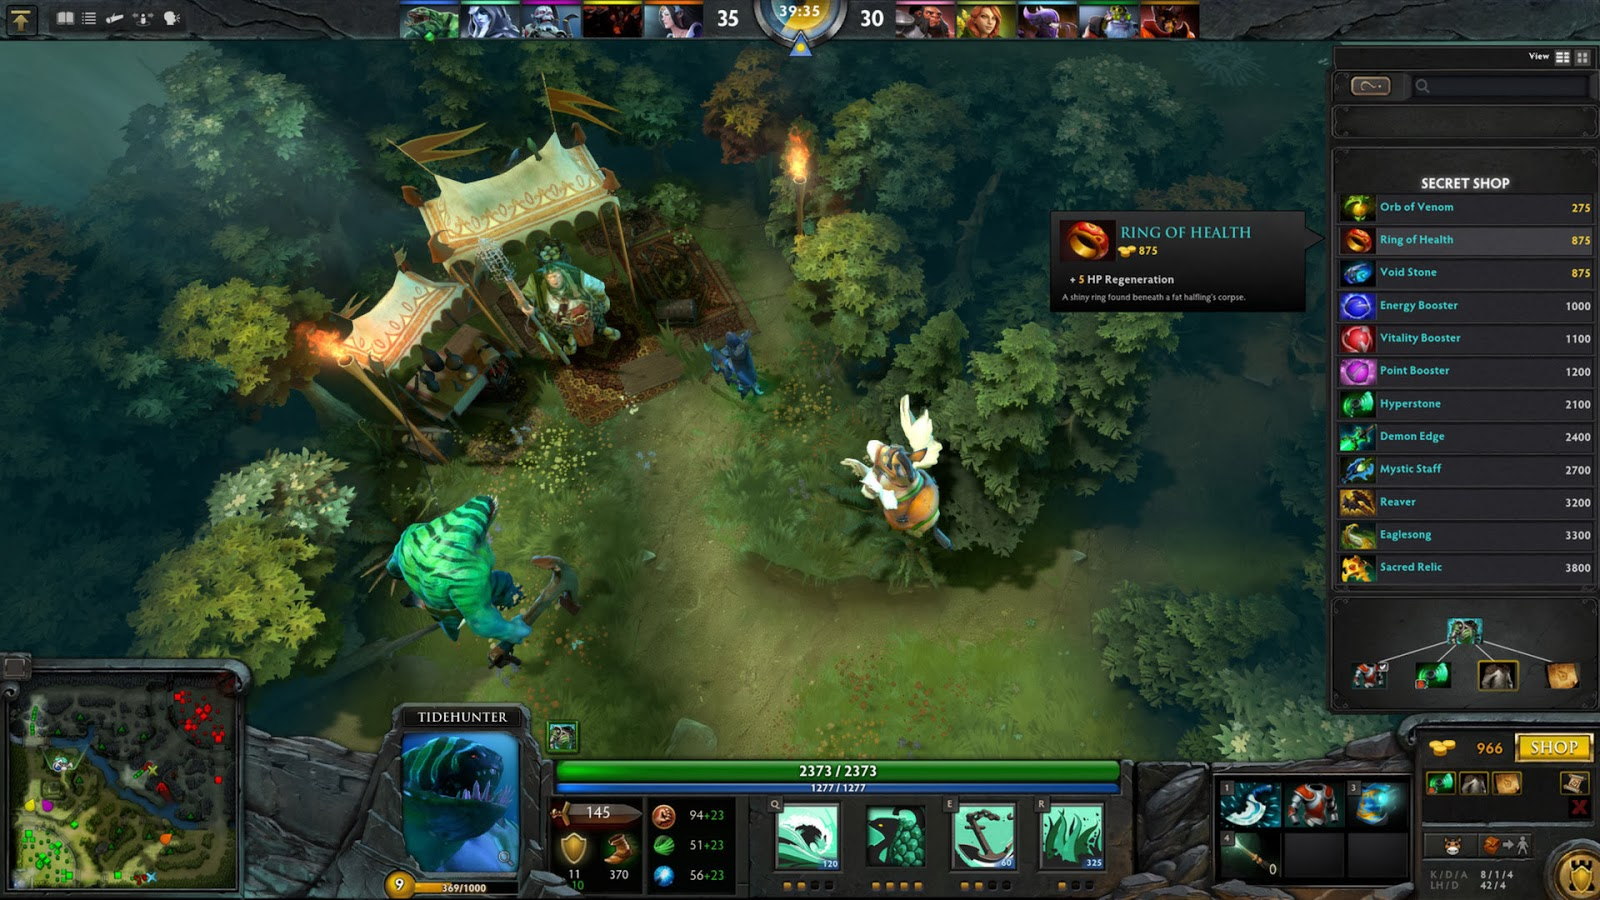 Dota 2 Offline Full Version for PC